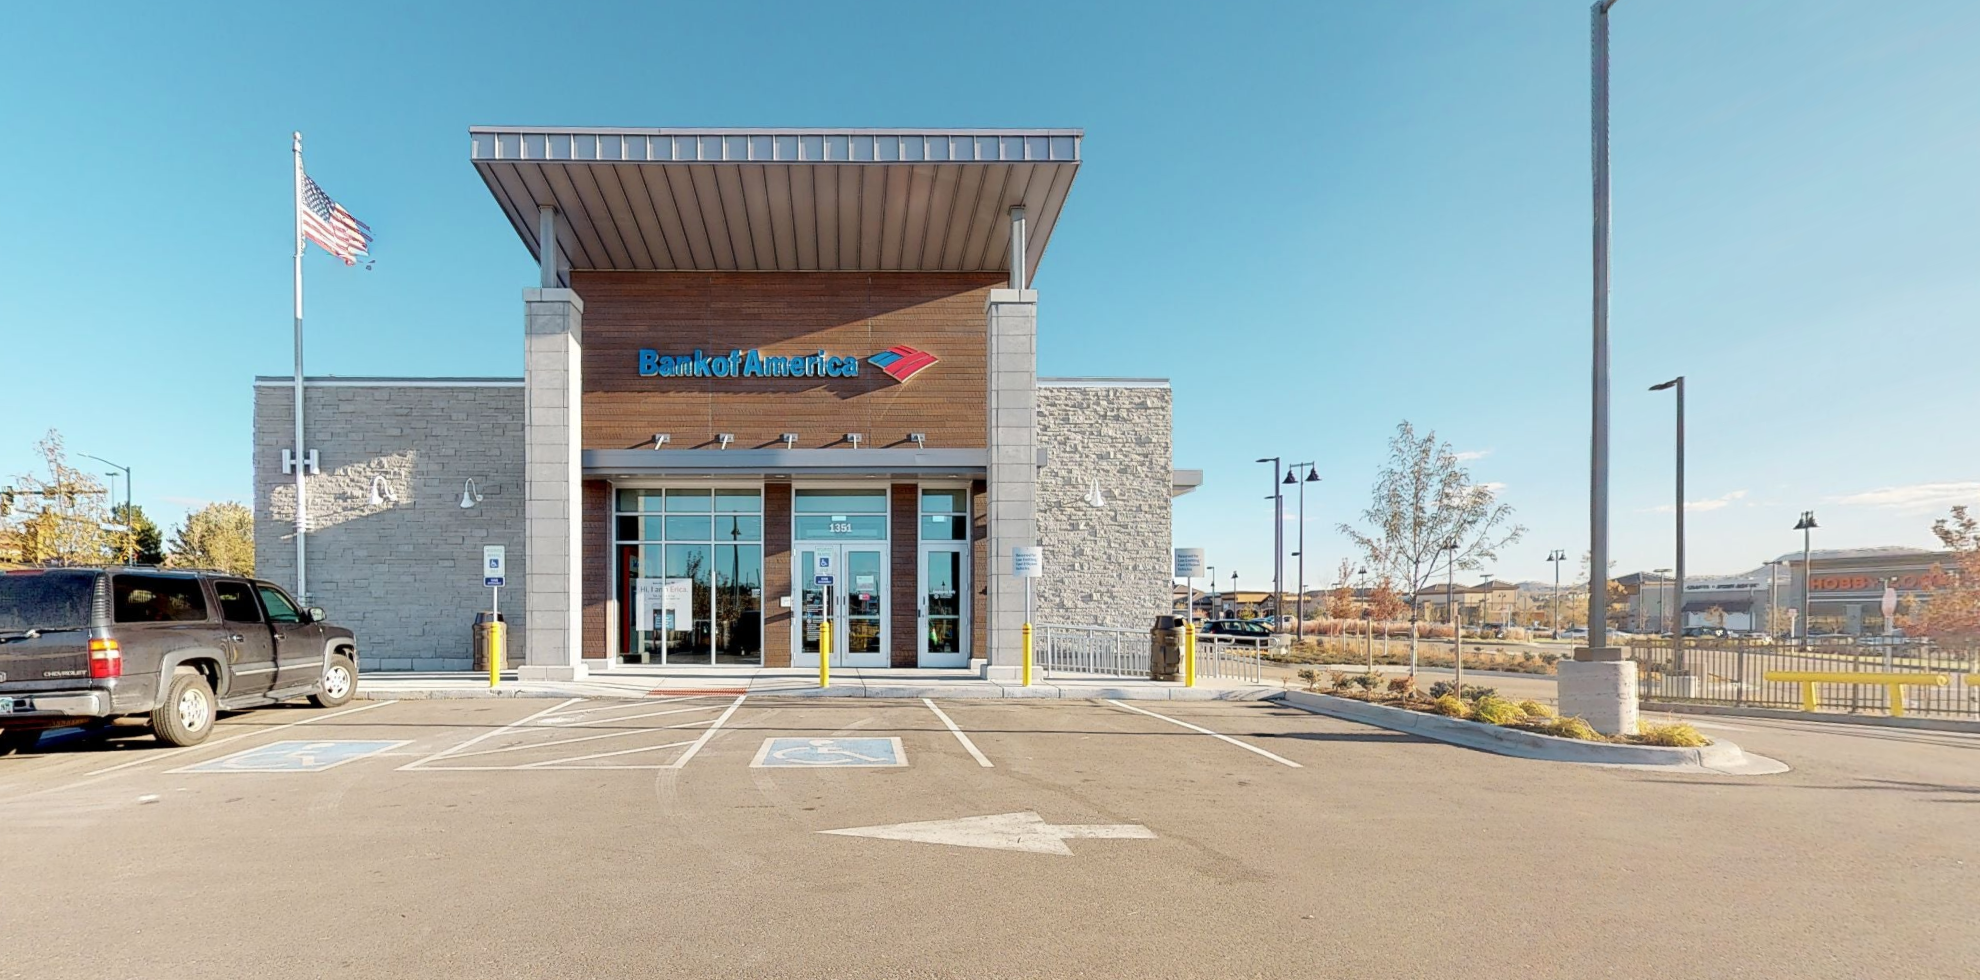 Bank of America financial center with drive-thru ATM   1351 New Beale St, Castle Rock, CO 80108